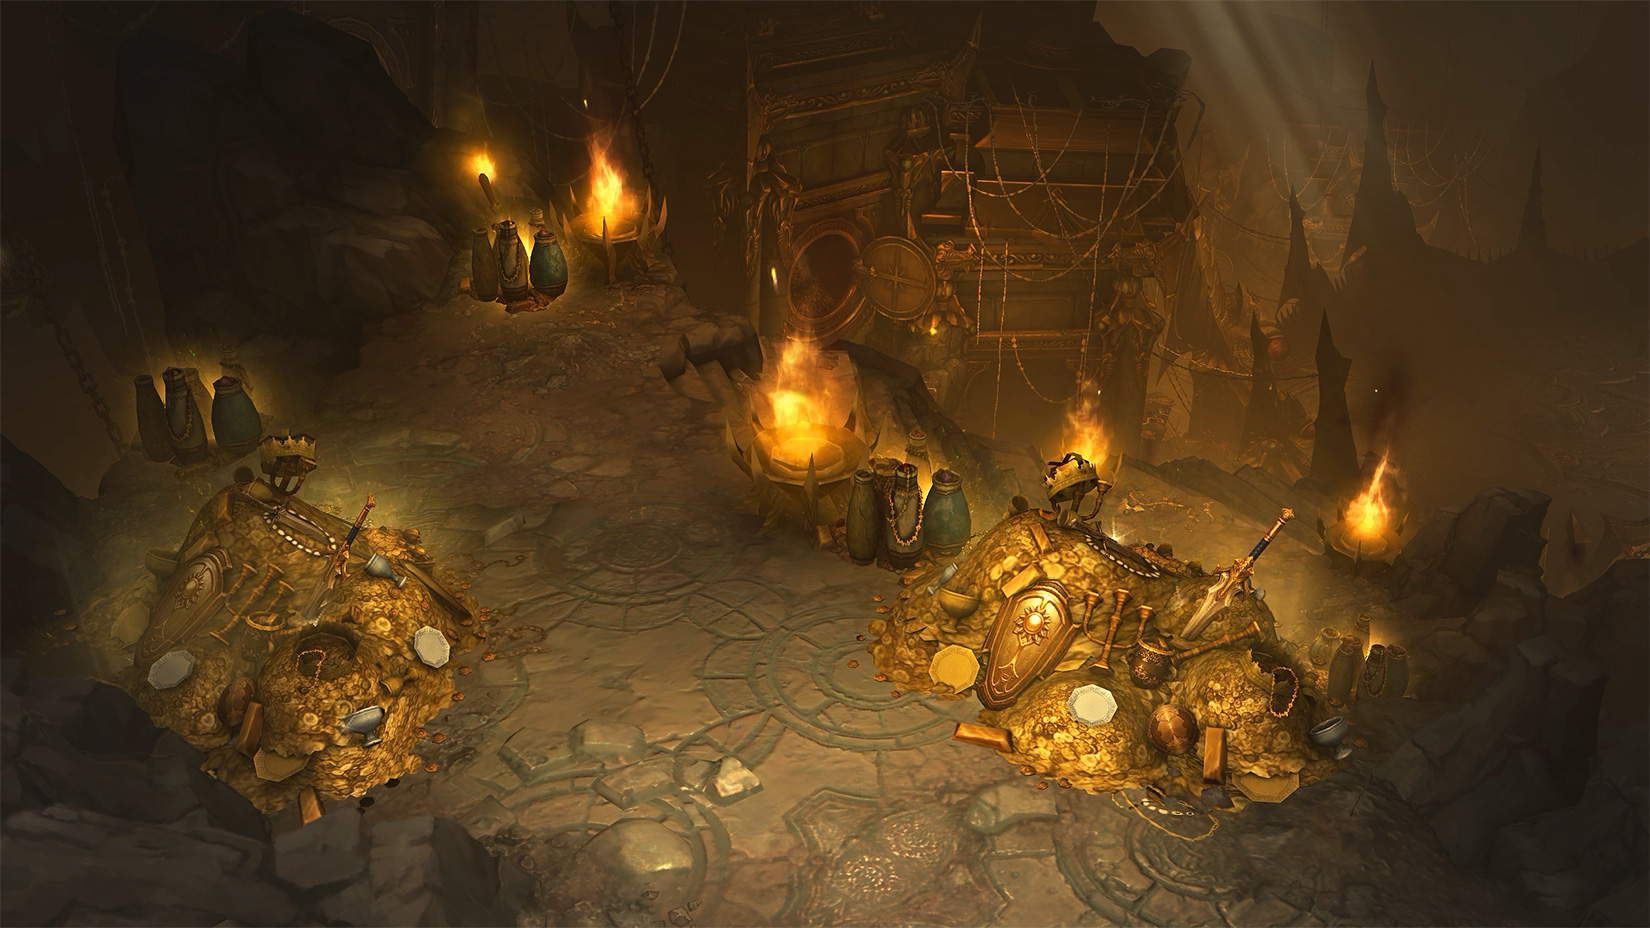 Diablo 3 Loot Goblin amiibo gives Switch owners untold riches